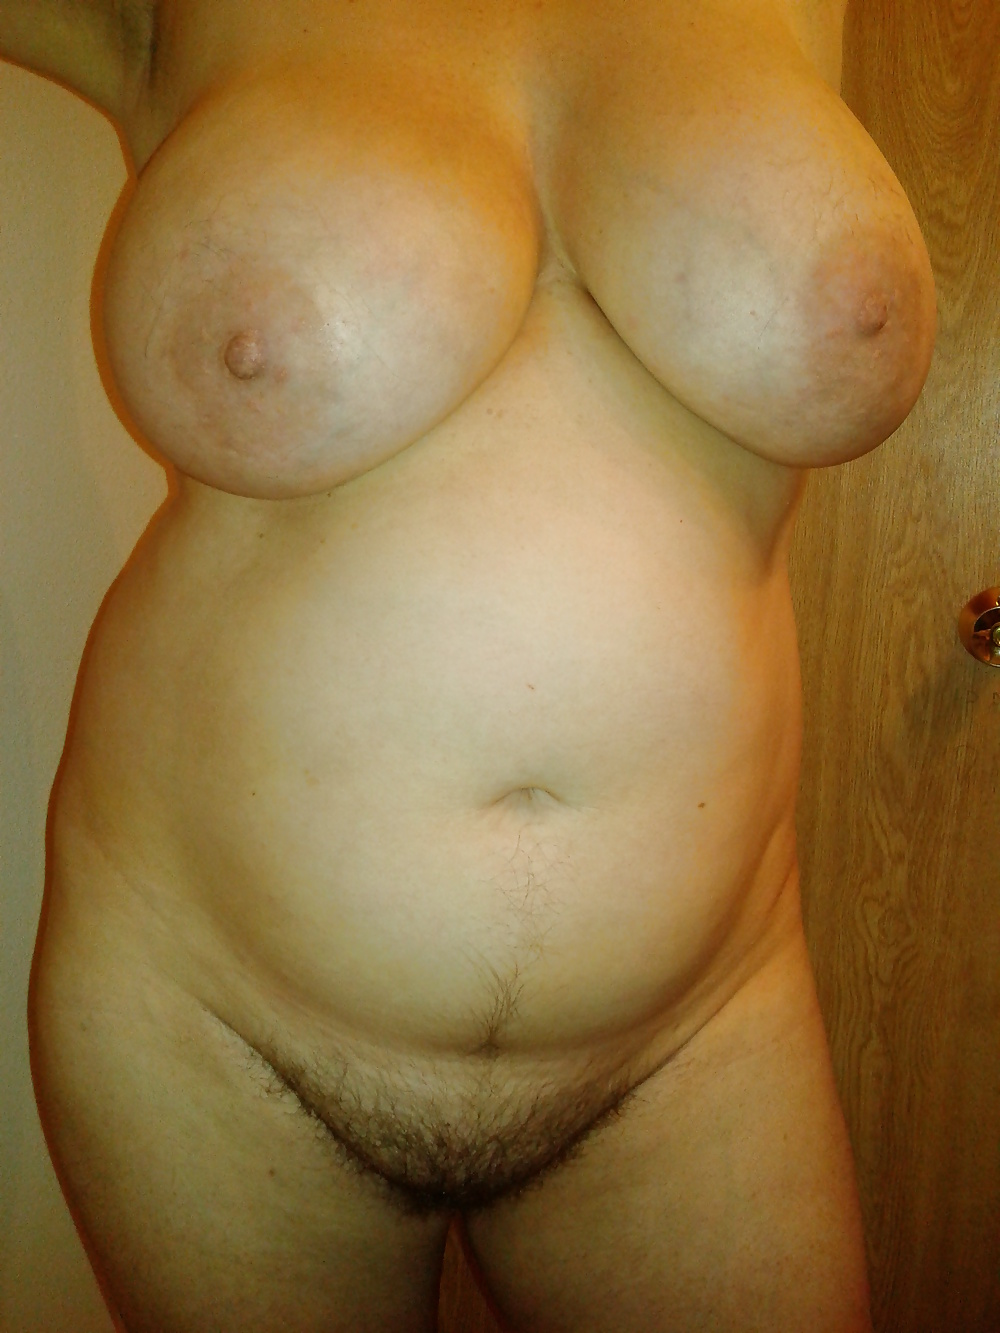 BBW MILF's Chubby Hairy Cunt and Huge Natural Busty 40F Tits - 9 Pics -  xHamster.com